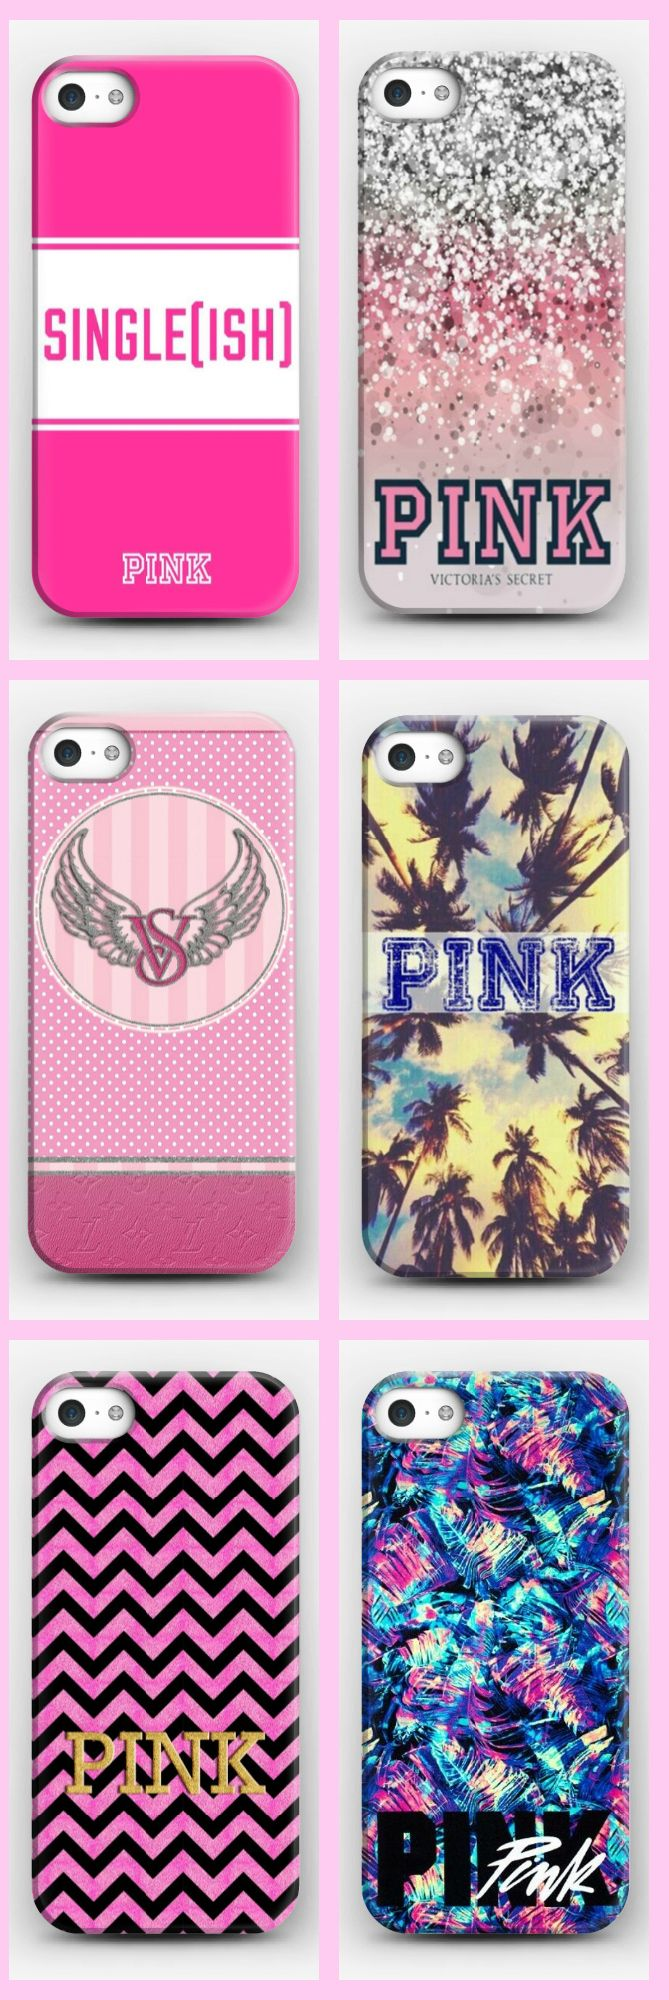 Victoria's Secret PINK 1986 PC Hard Case Covers For iPhone 4S 5 5s 5C 6 6S plus